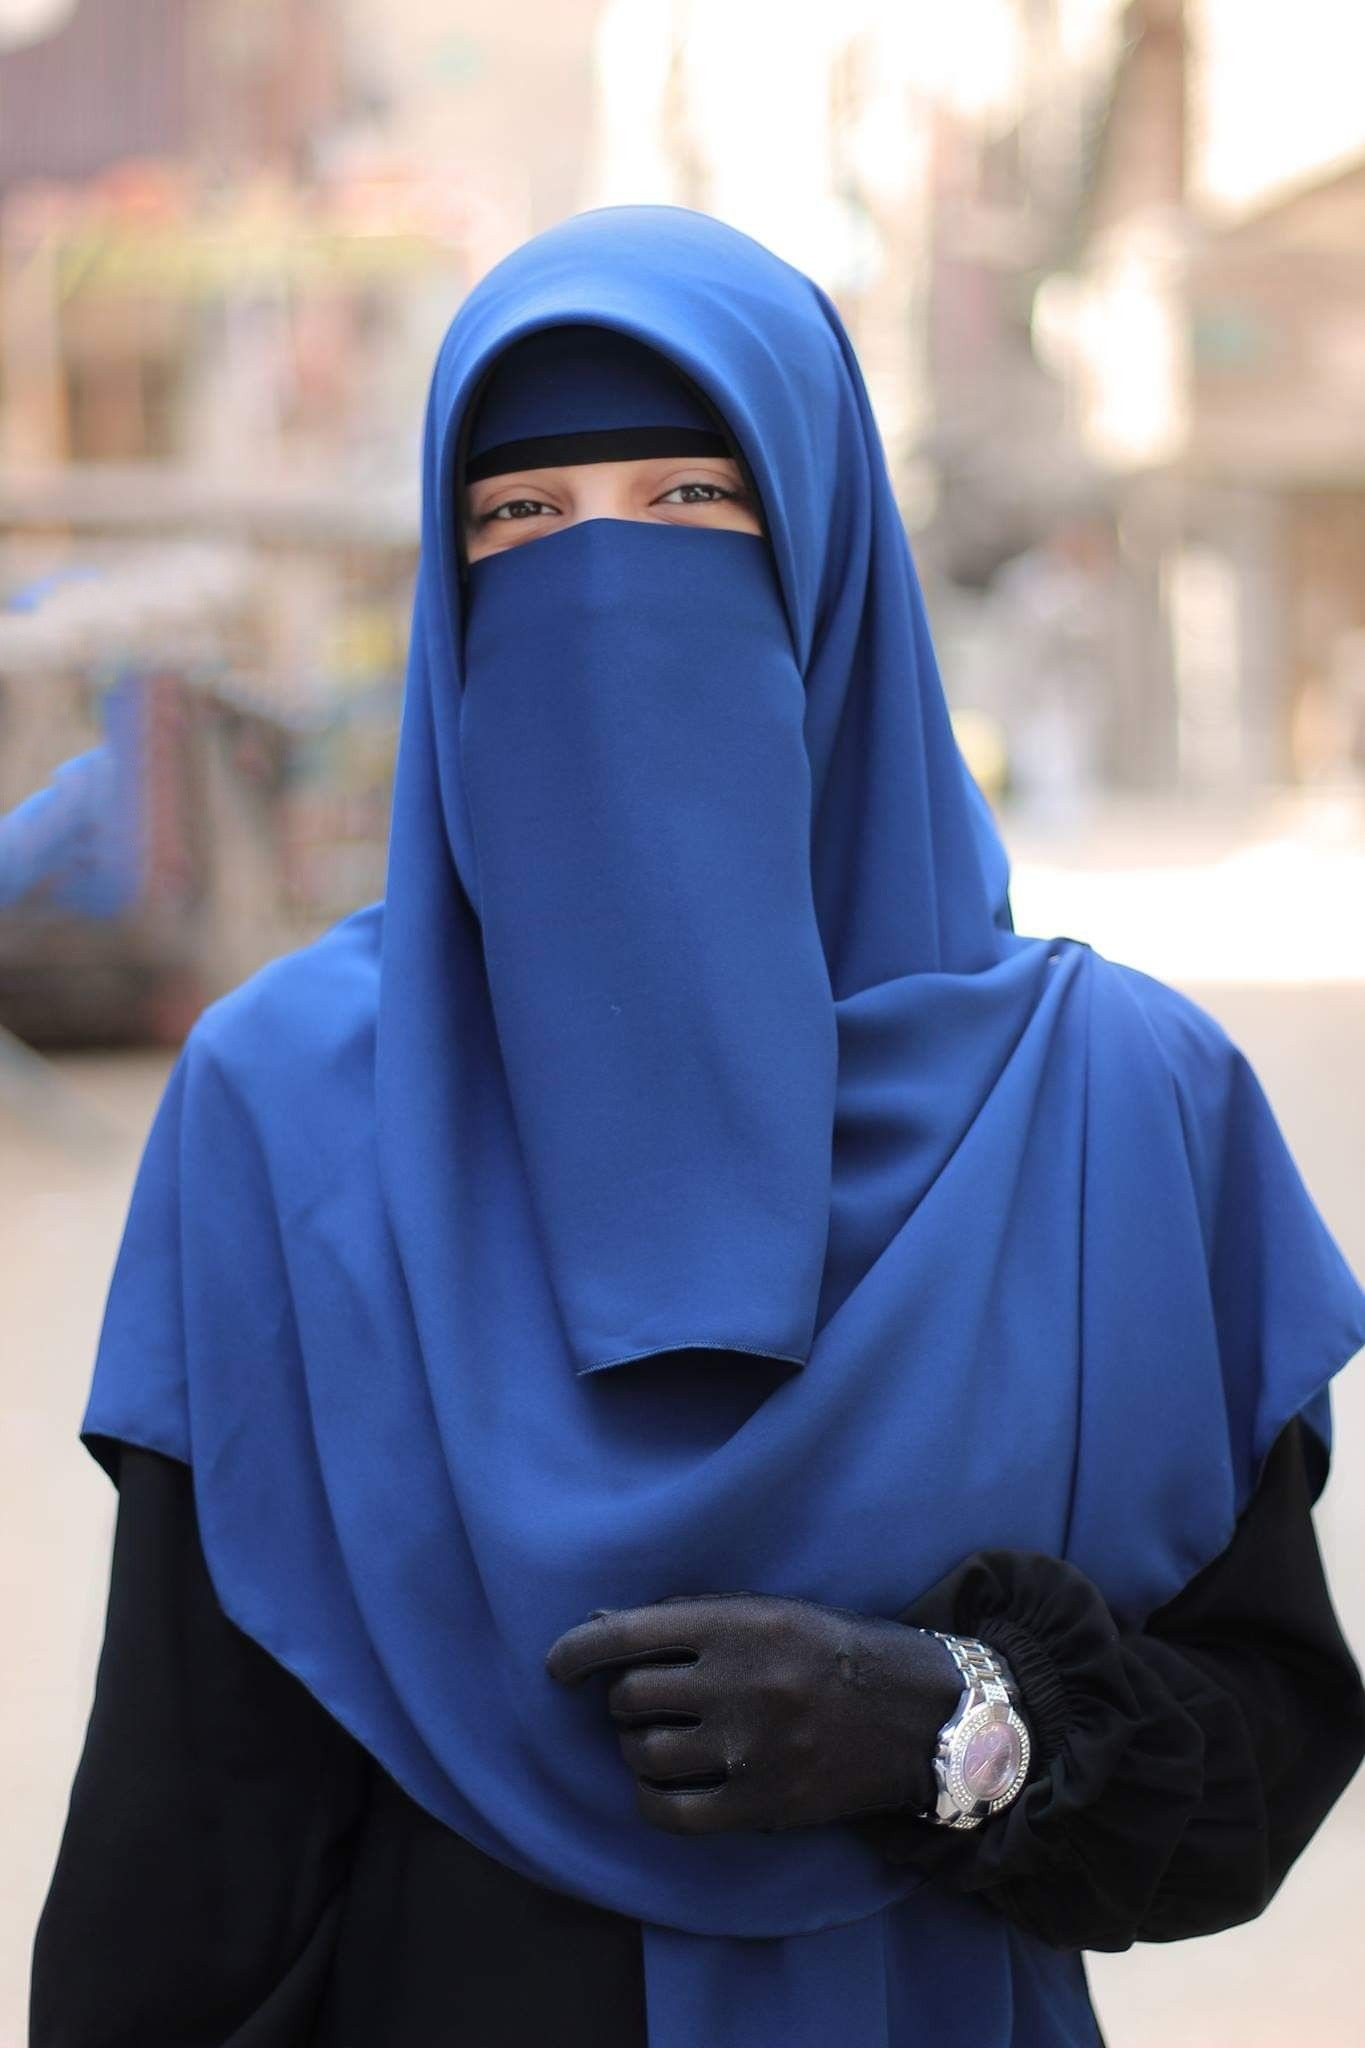 Versions Share C By Rhendy Hostta Thank You For Visiting My Pin In Pinterest In 2020 Niqab Fashion Niqab Beautiful Muslim Women